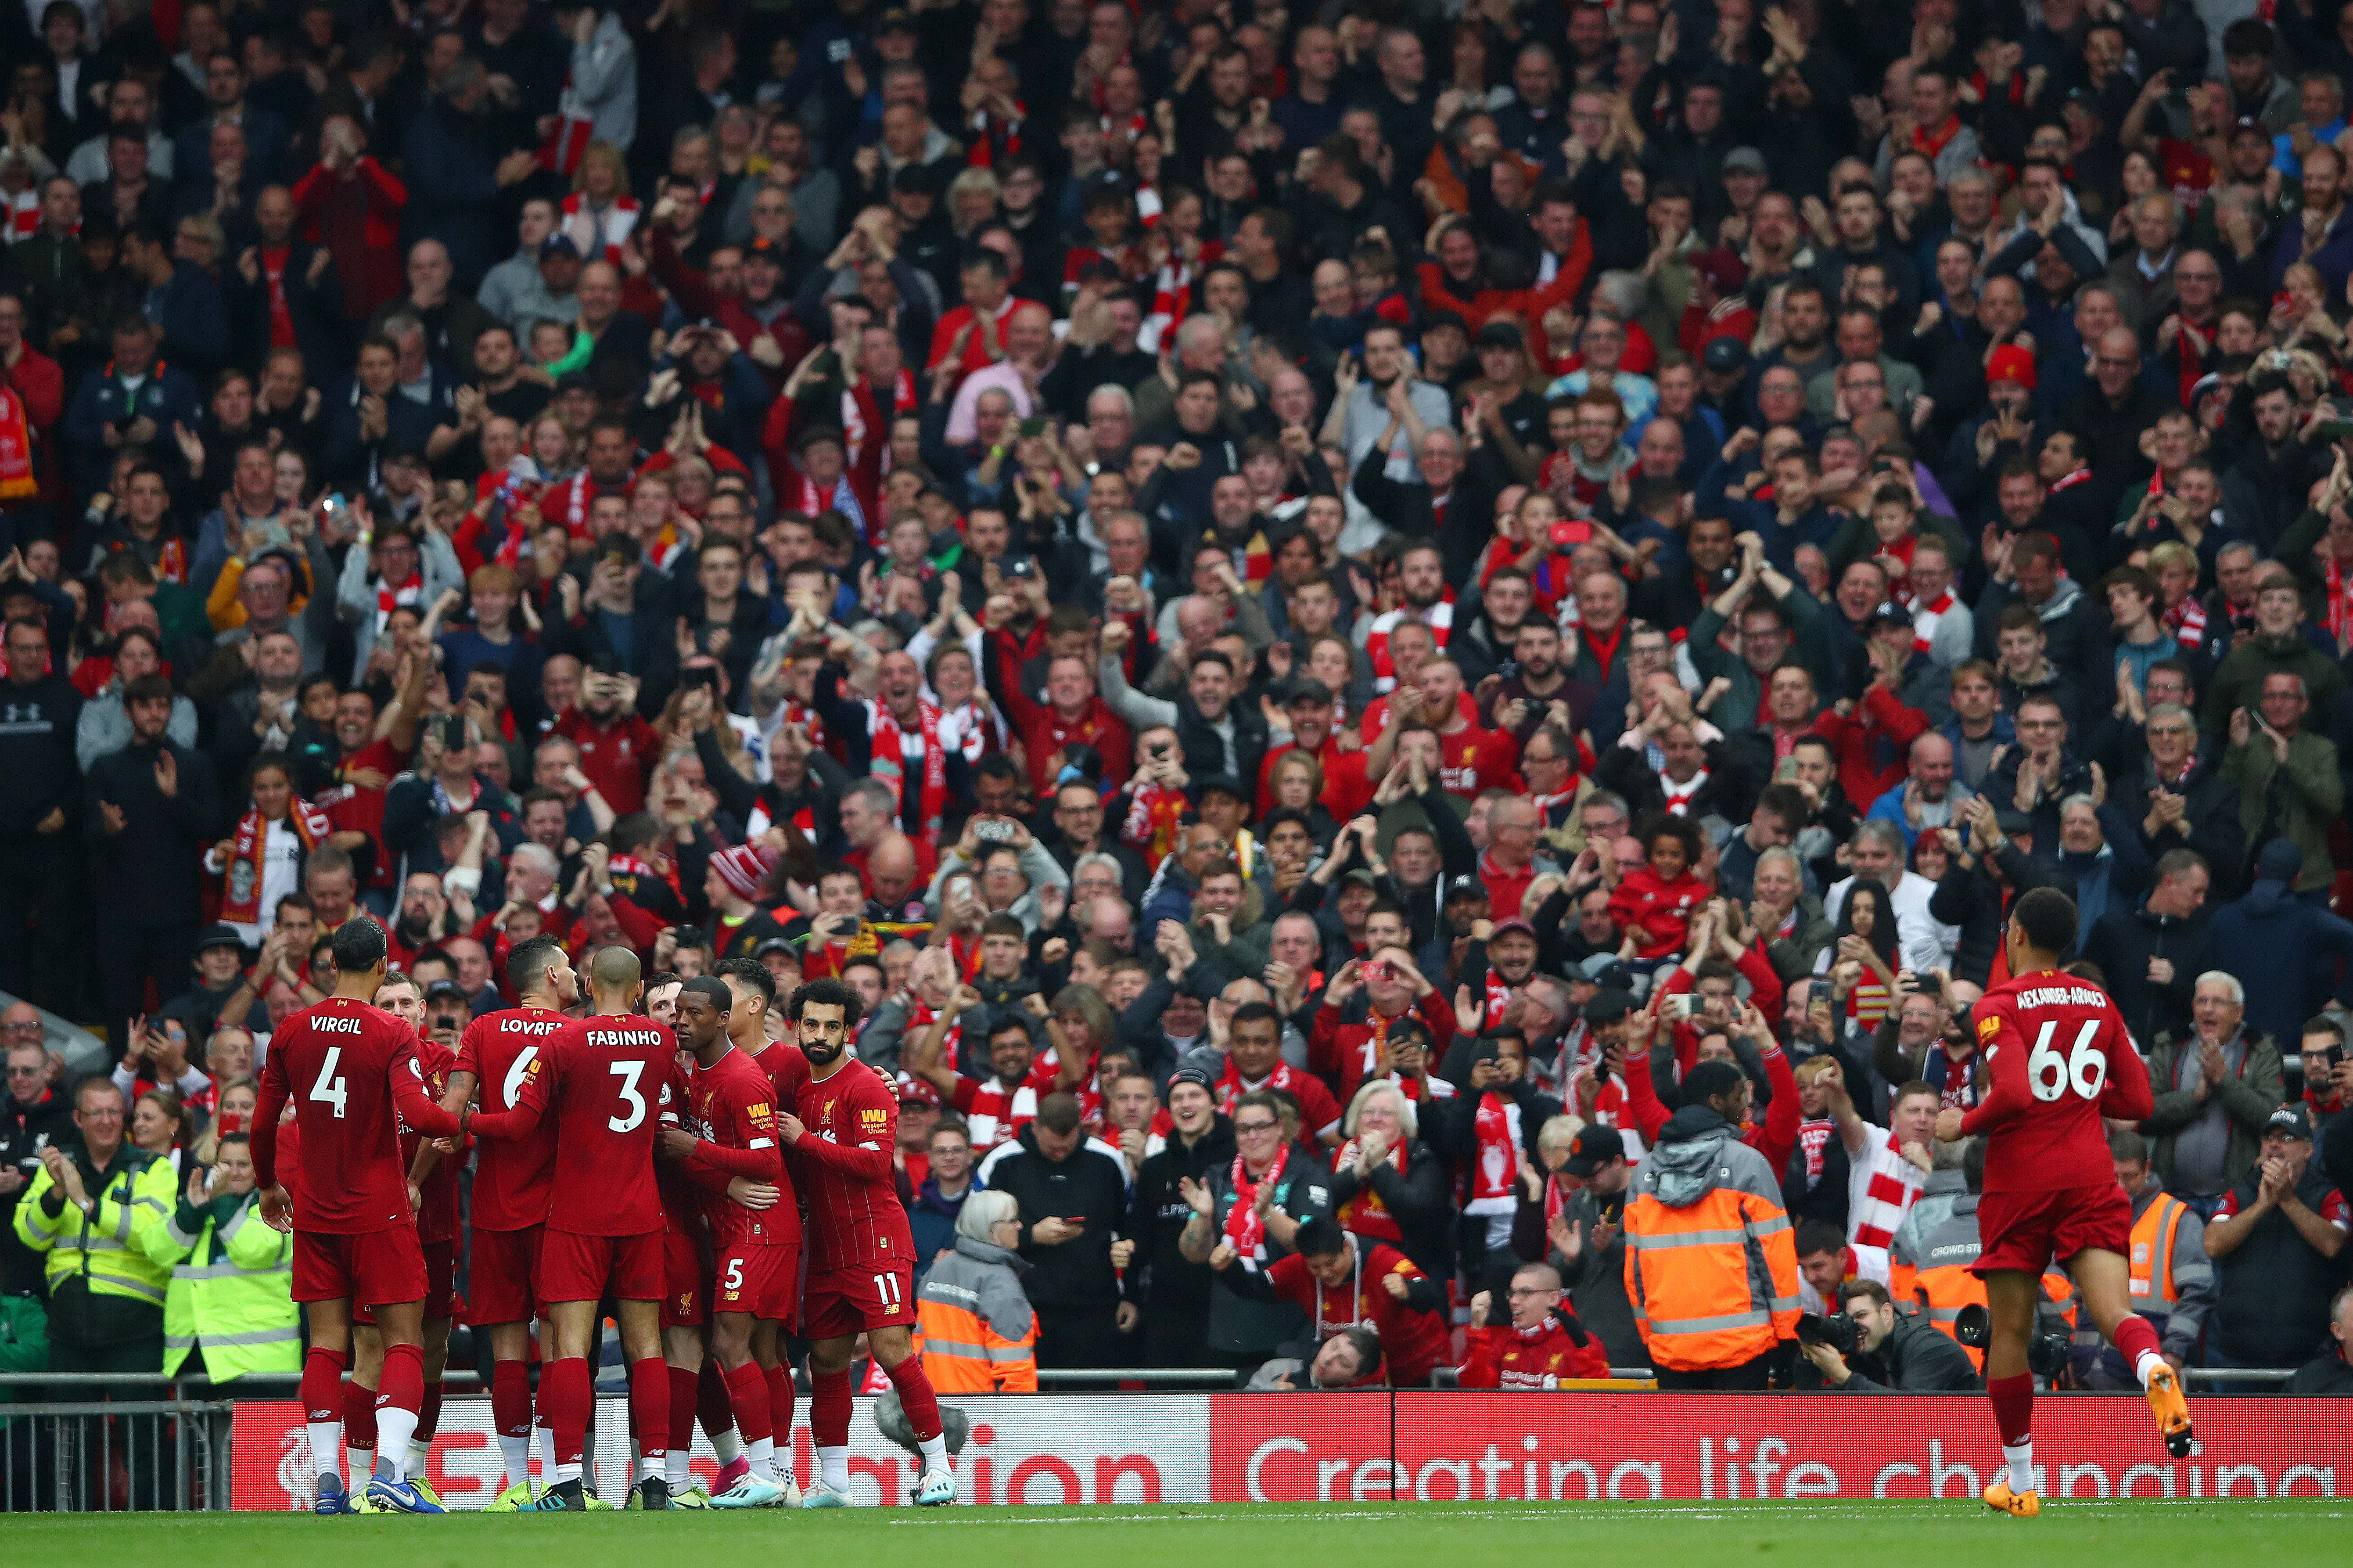 The Enfield rings with the sound YNWA. (Photo by Clive Brunskill/Getty Images)